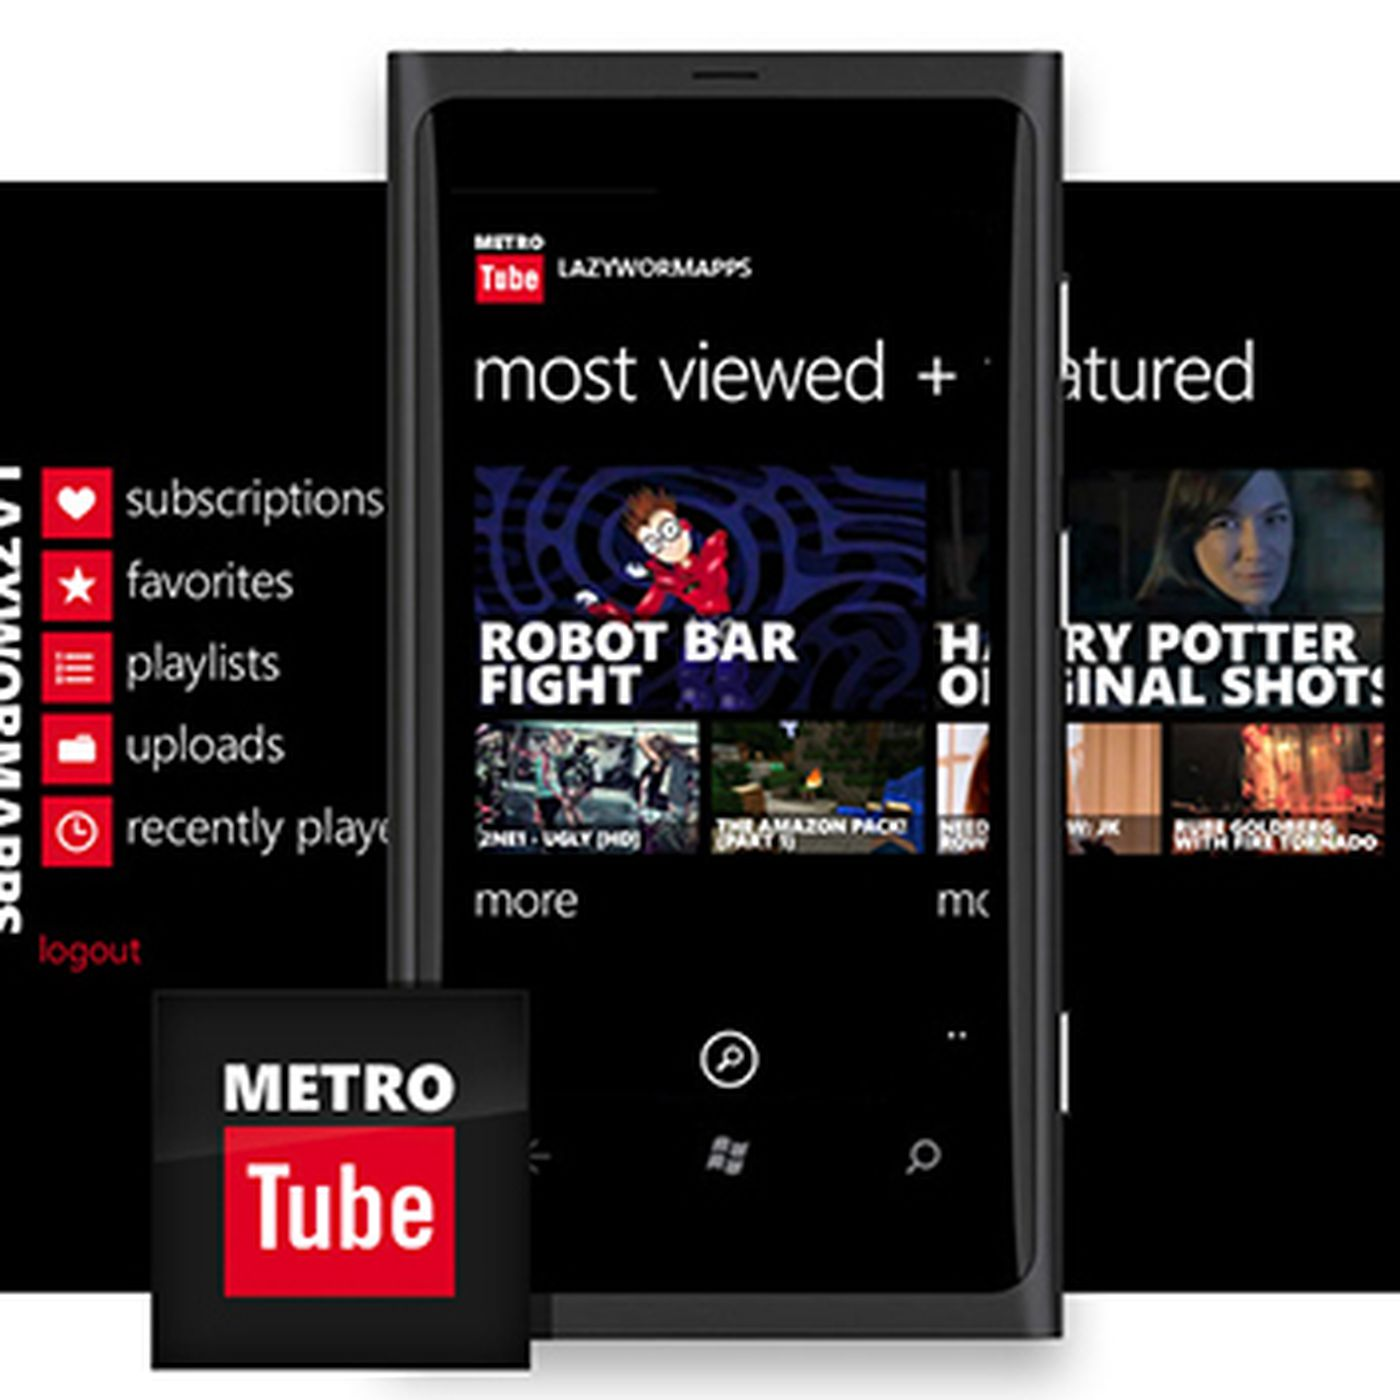 Any good free youtube app for windows 10 mobile? Windows central.